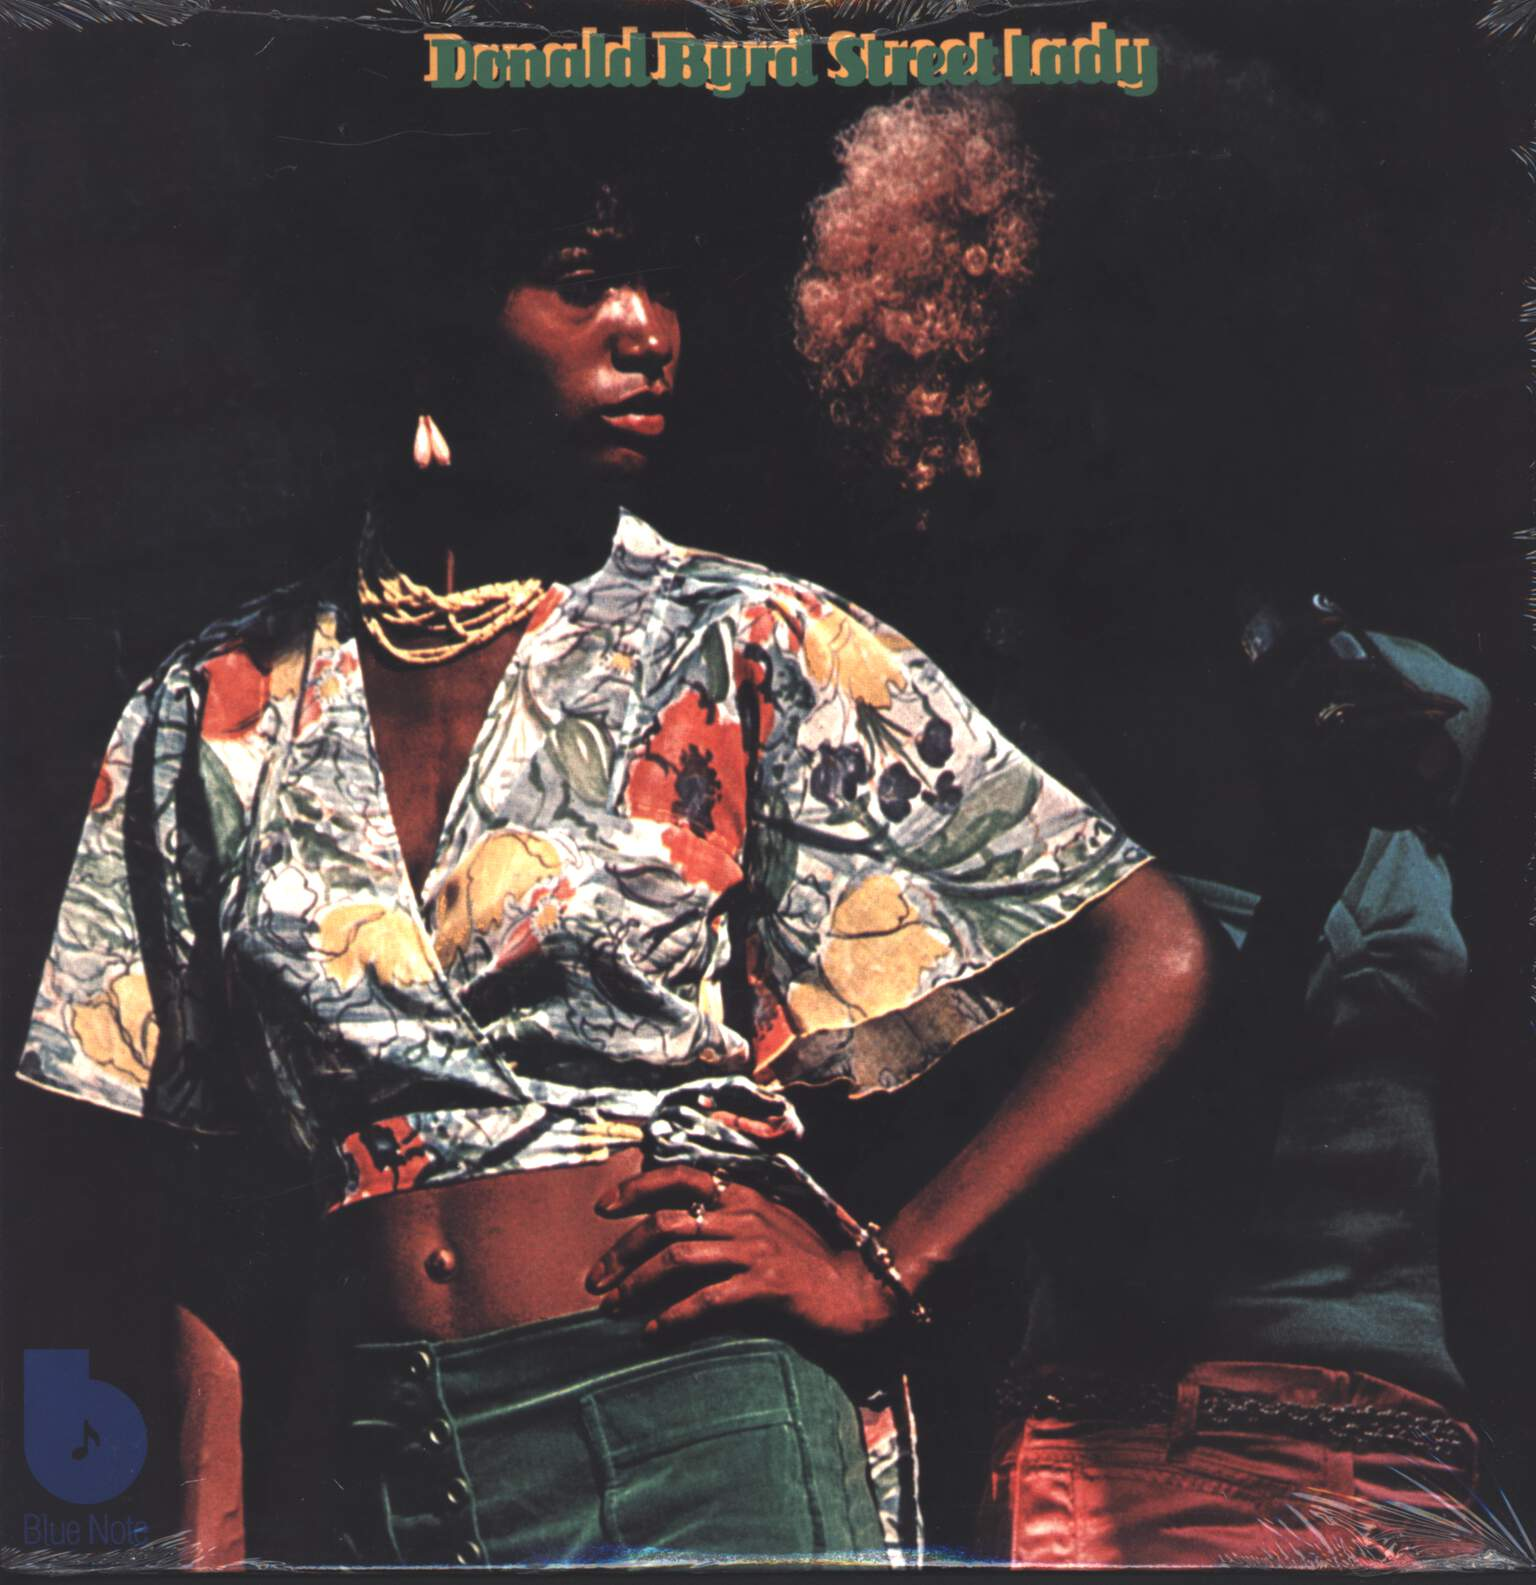 Donald Byrd: Street Lady, LP (Vinyl)